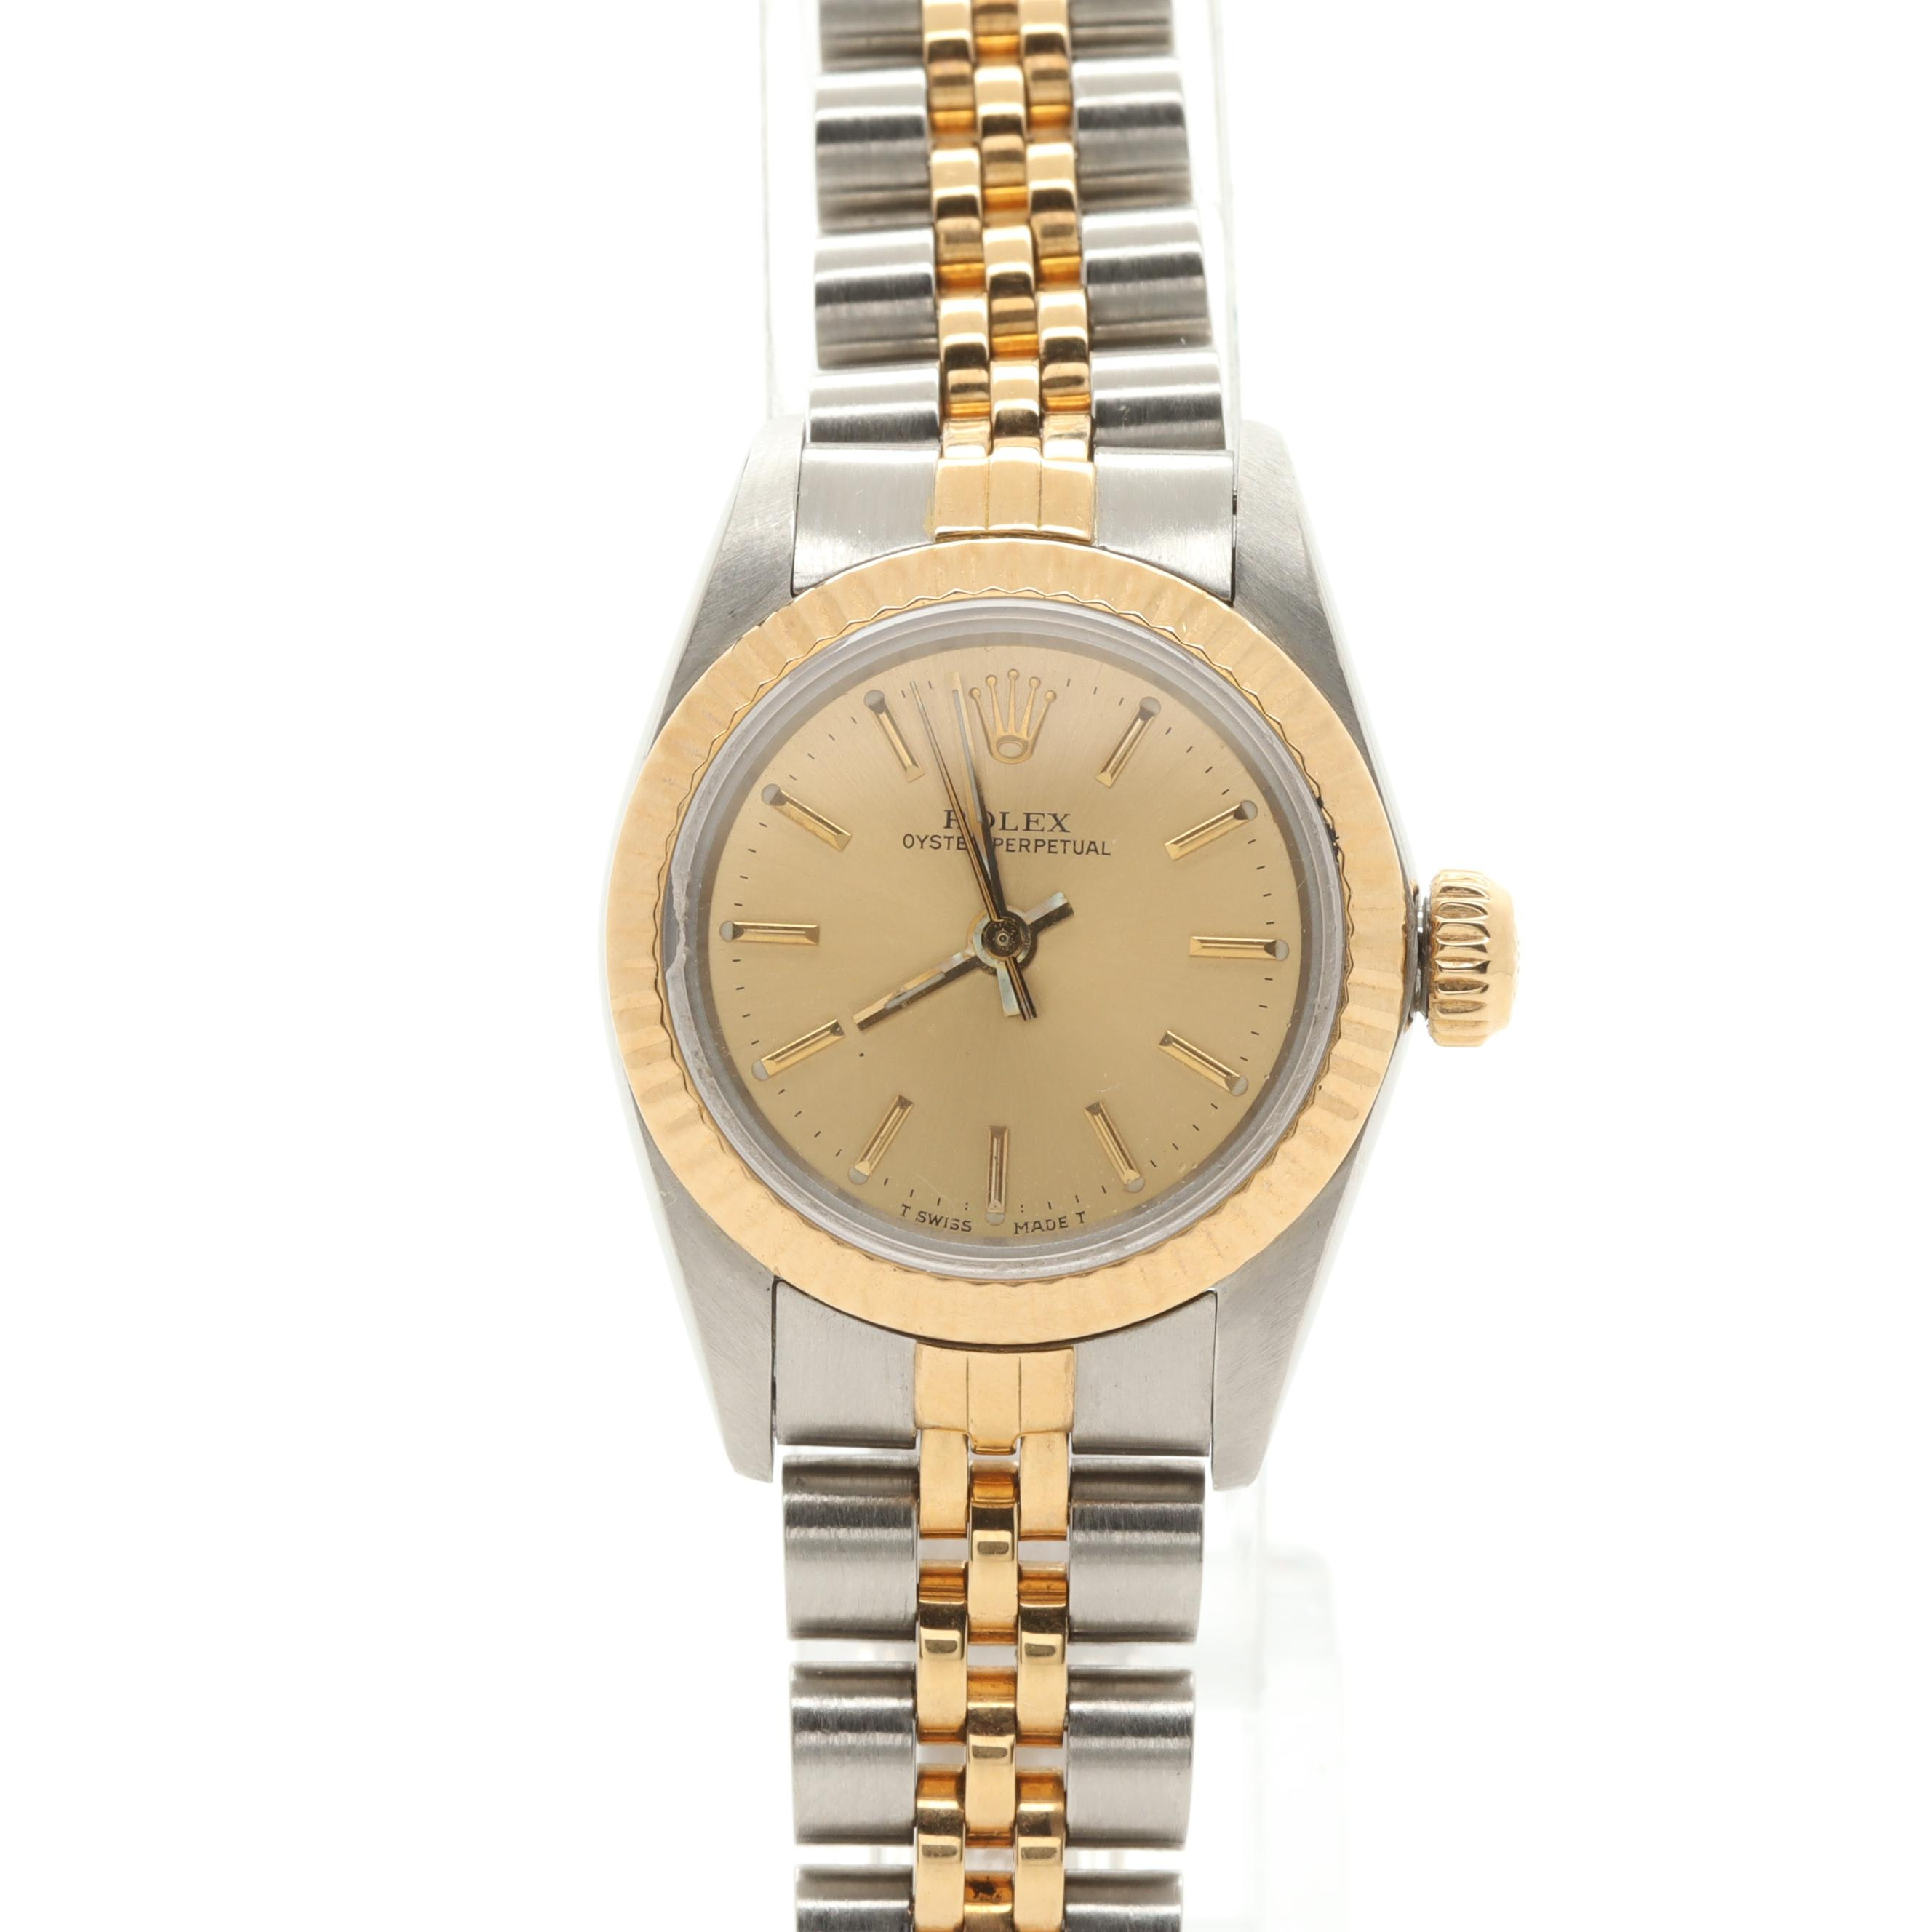 Circa 1988 Rolex 18K Yellow Gold Stainless Two-Tone Oyster Perpetual Wristwatch